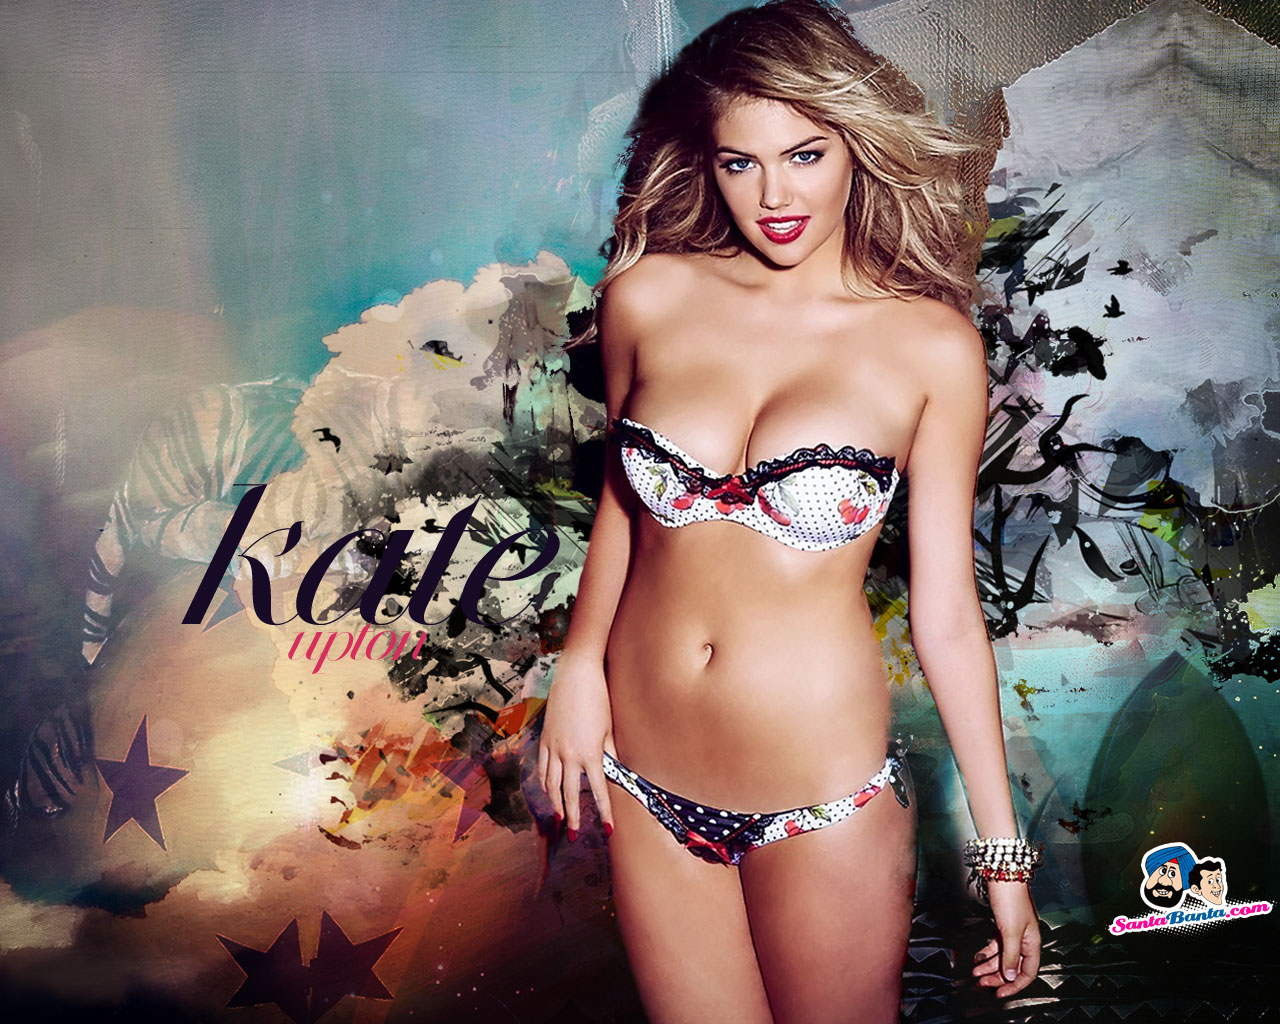 kate upton hot girl wallpaperswallpaper background wallpaper background